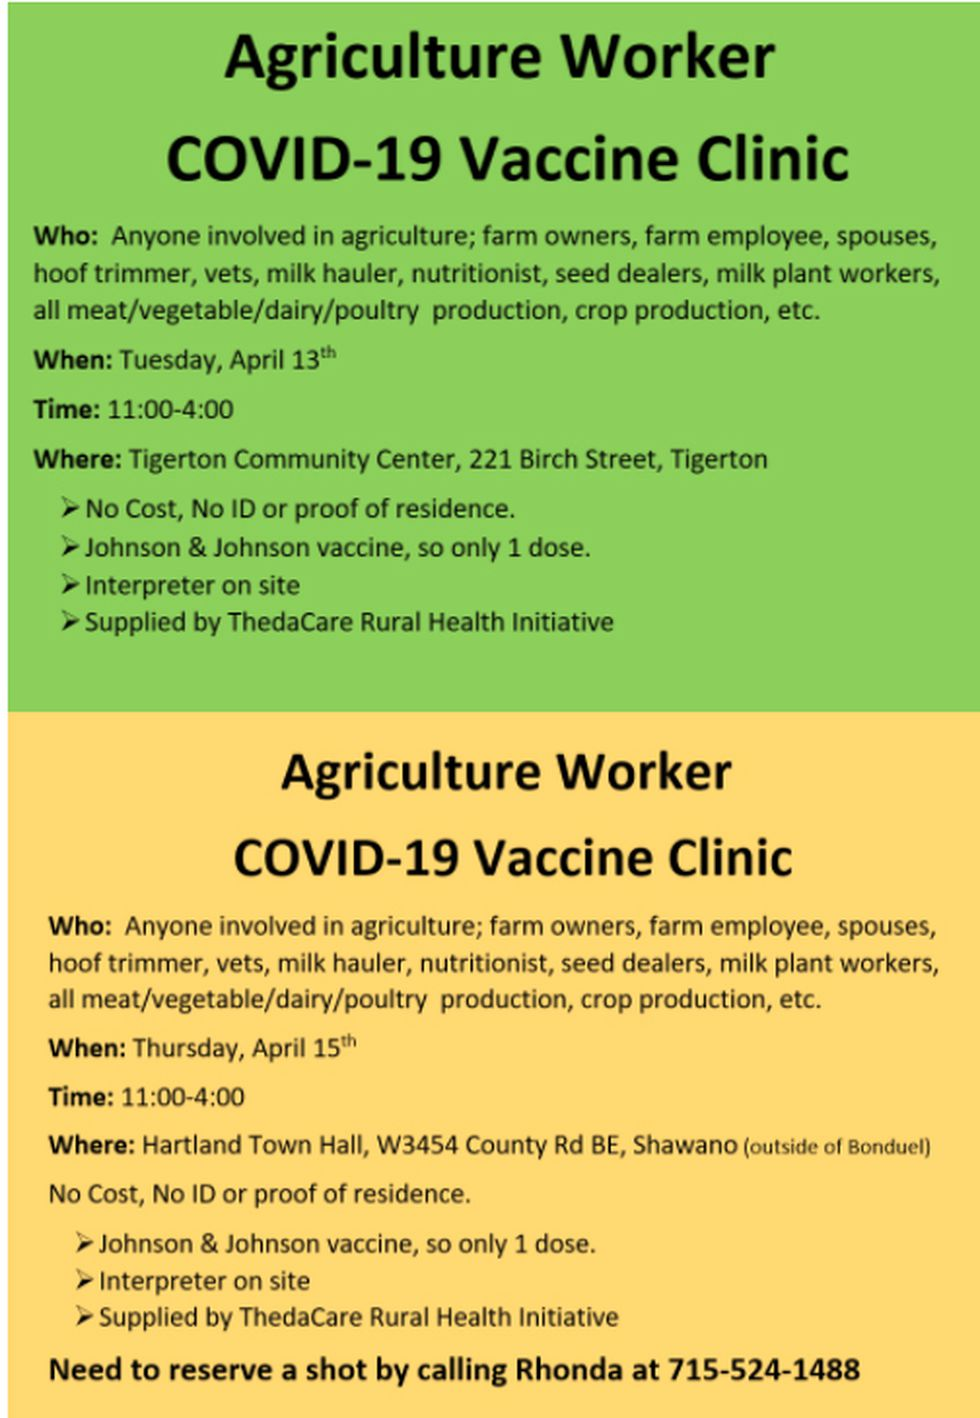 Vaccination clinic info